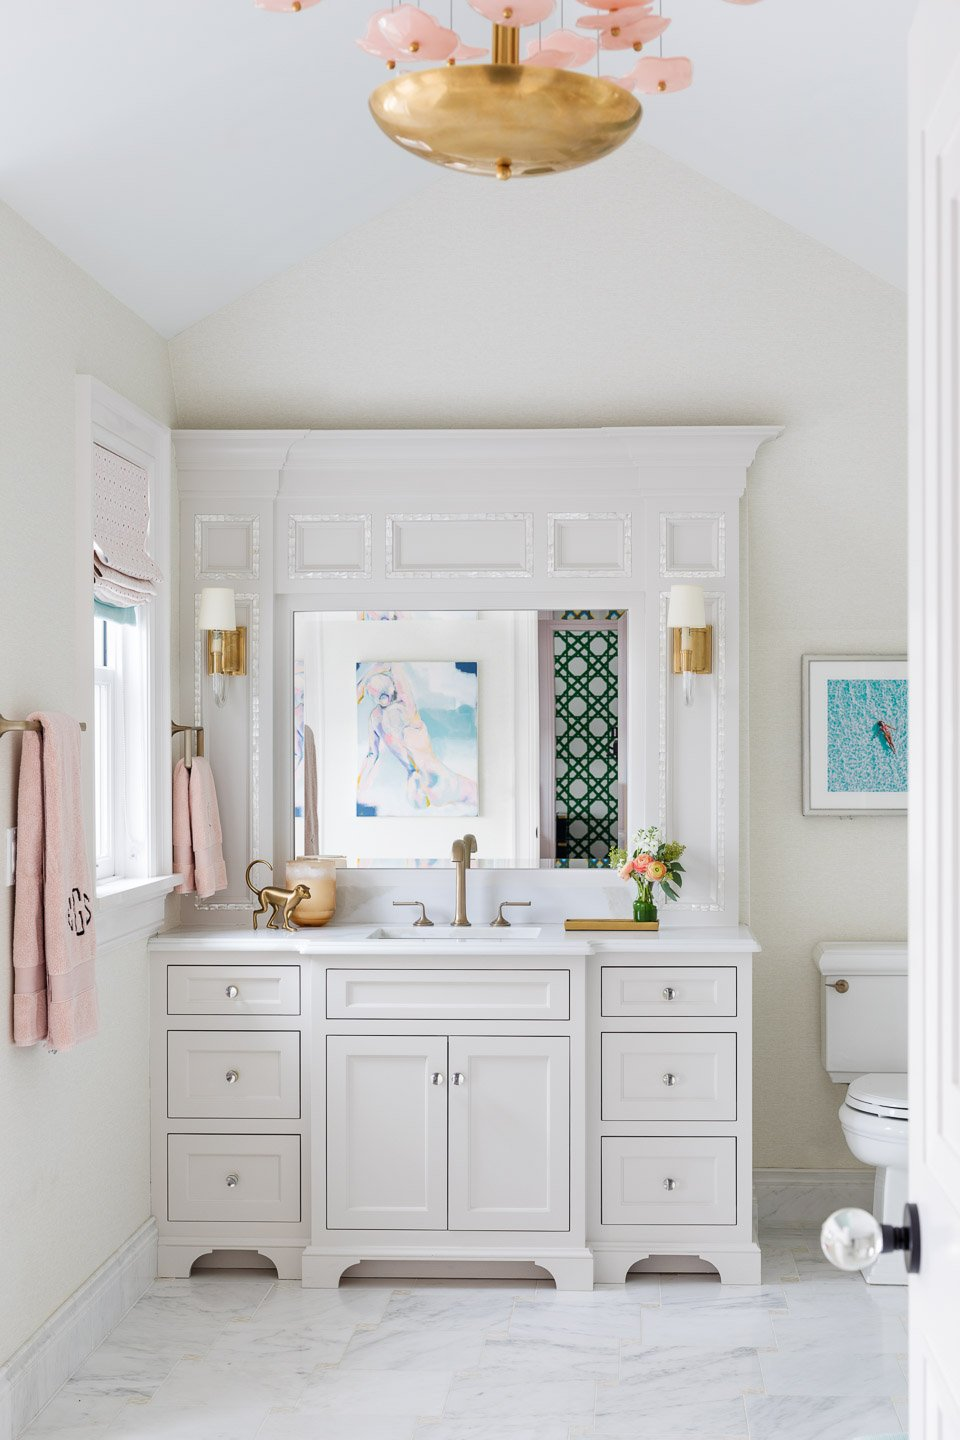 Blakely Interior Design | The Jersey Palm Project | Master bathroom vanity